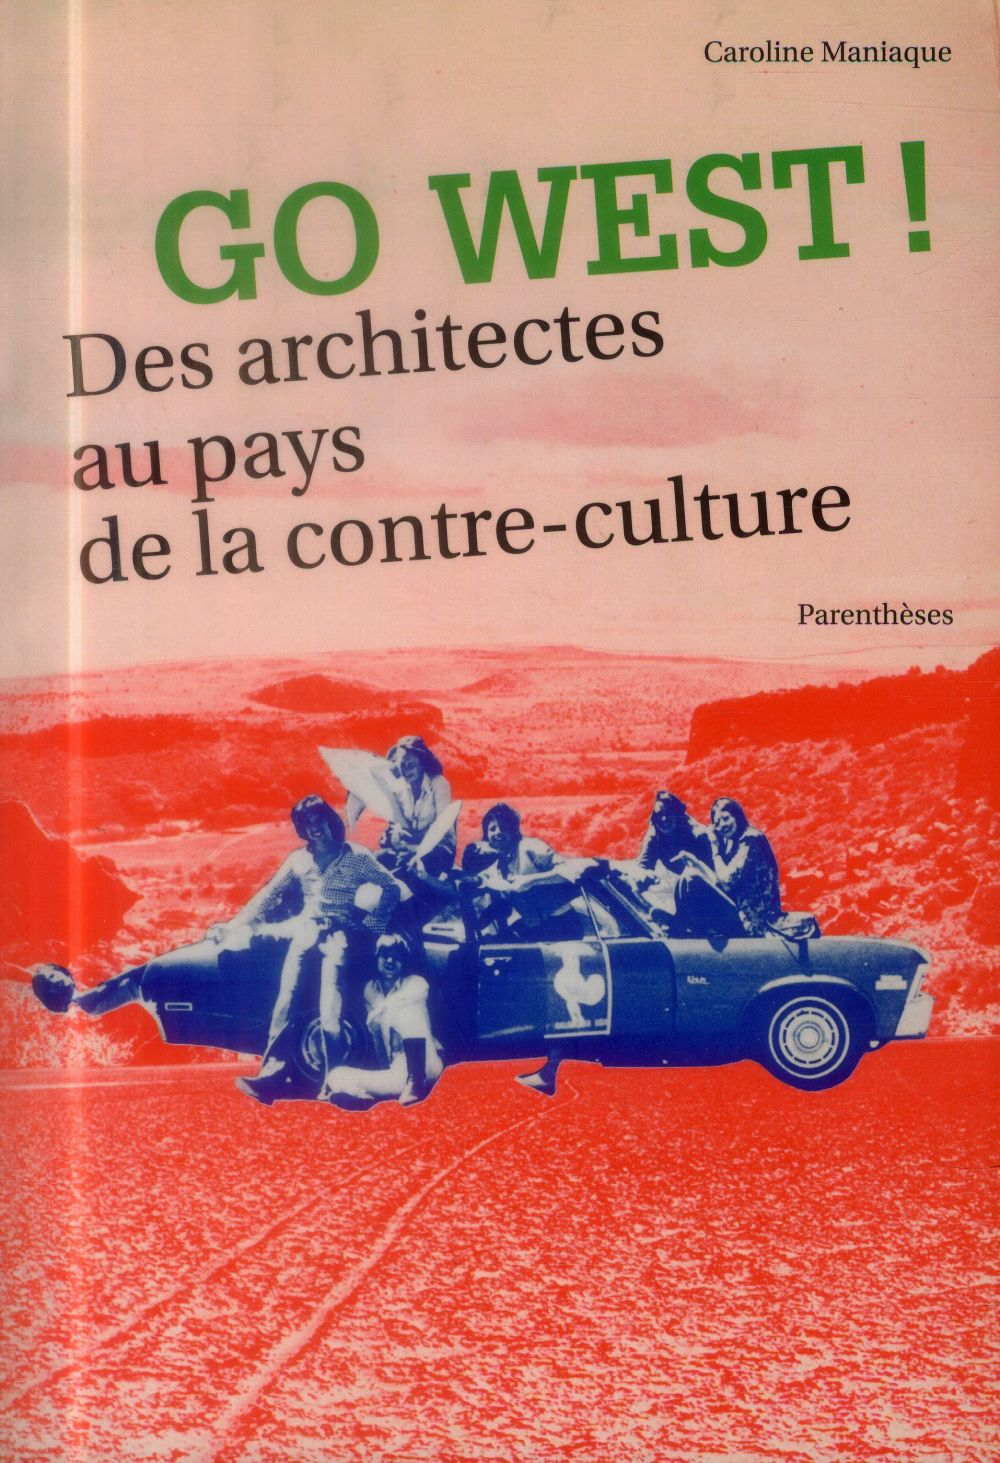 Go west ; des architectes au pays de la contre-culture